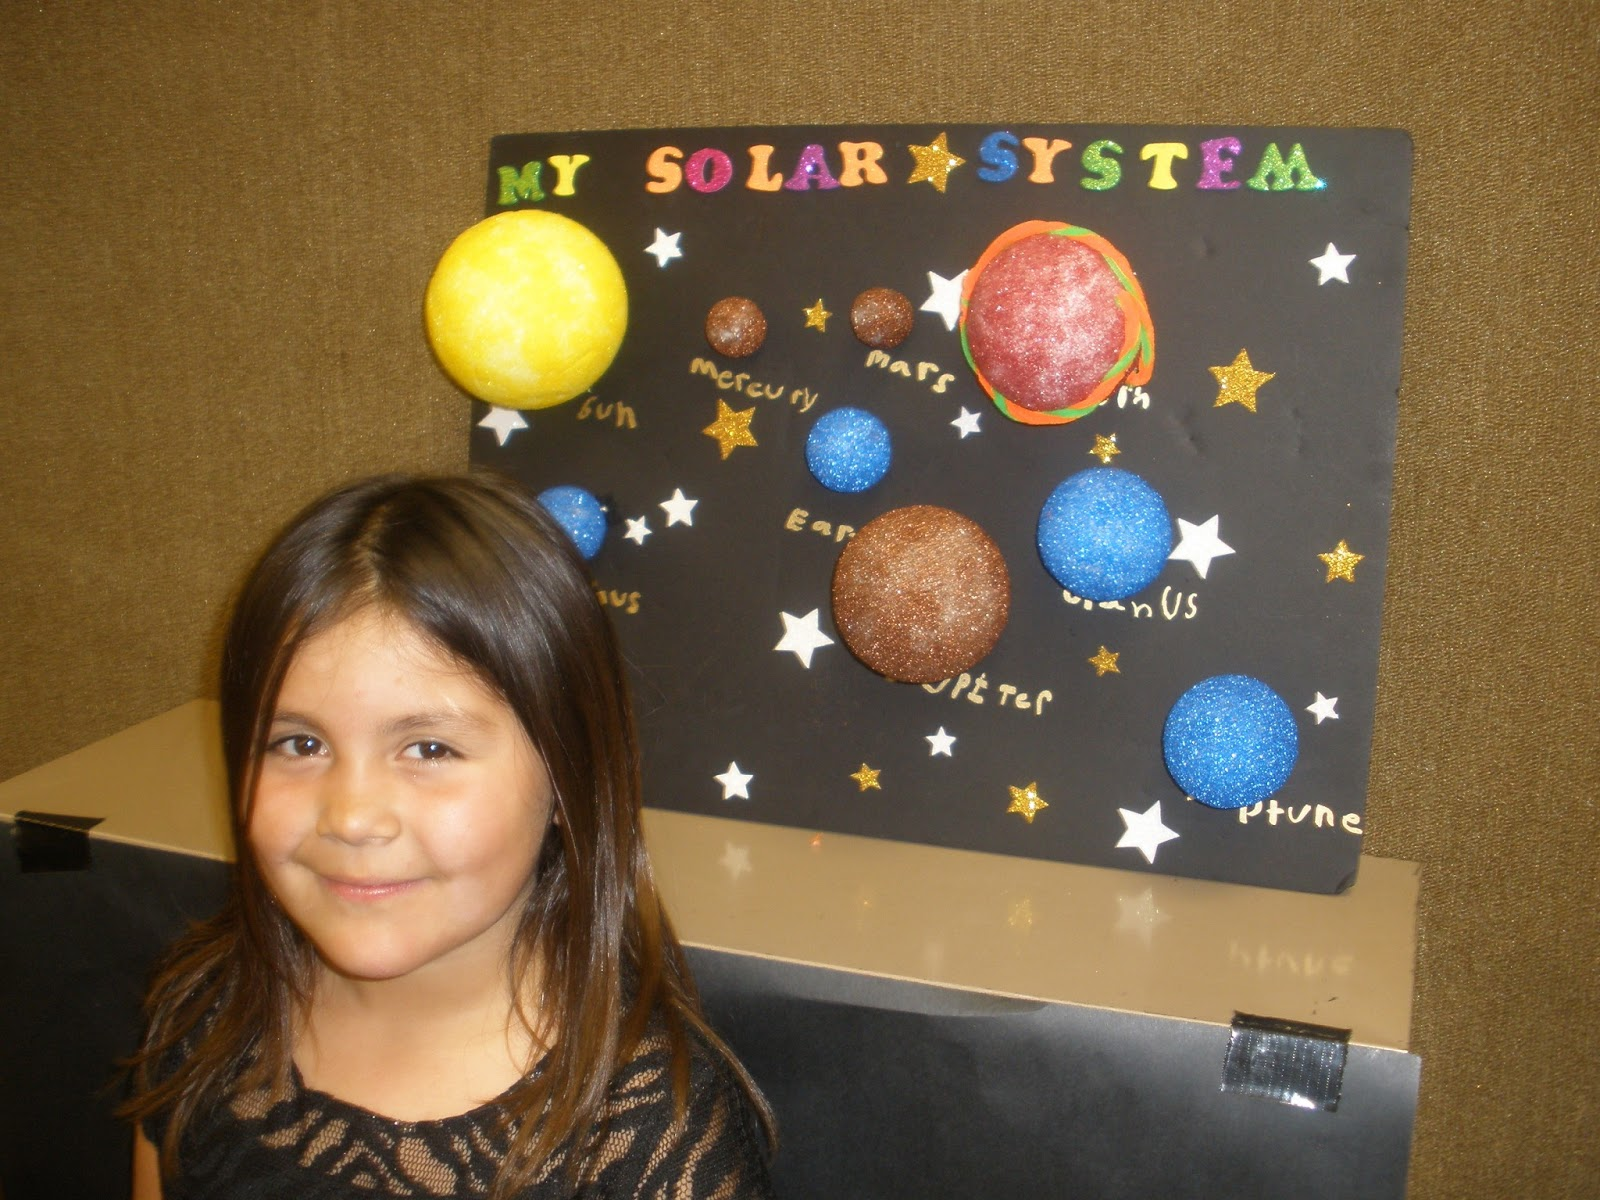 school science project solar system - photo #37